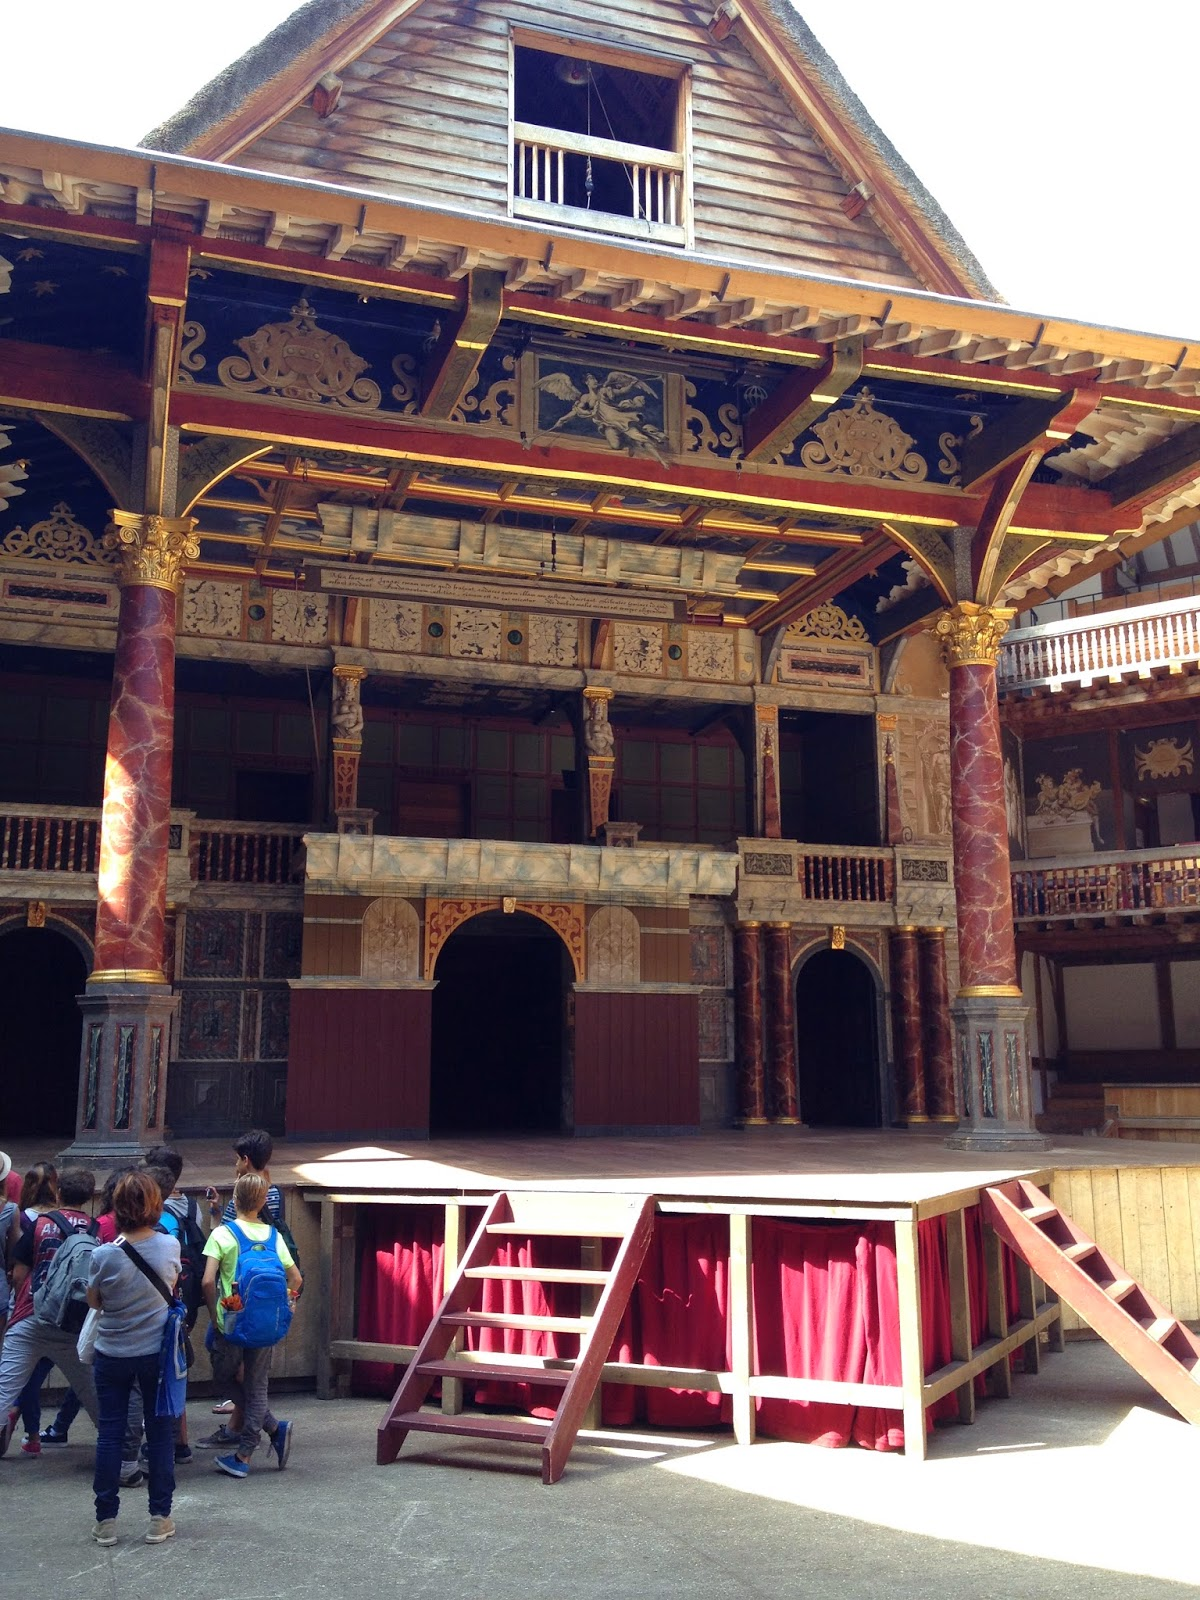 The Globe Theatre (photo credit: http://researchandramblings.blogspot.com/)